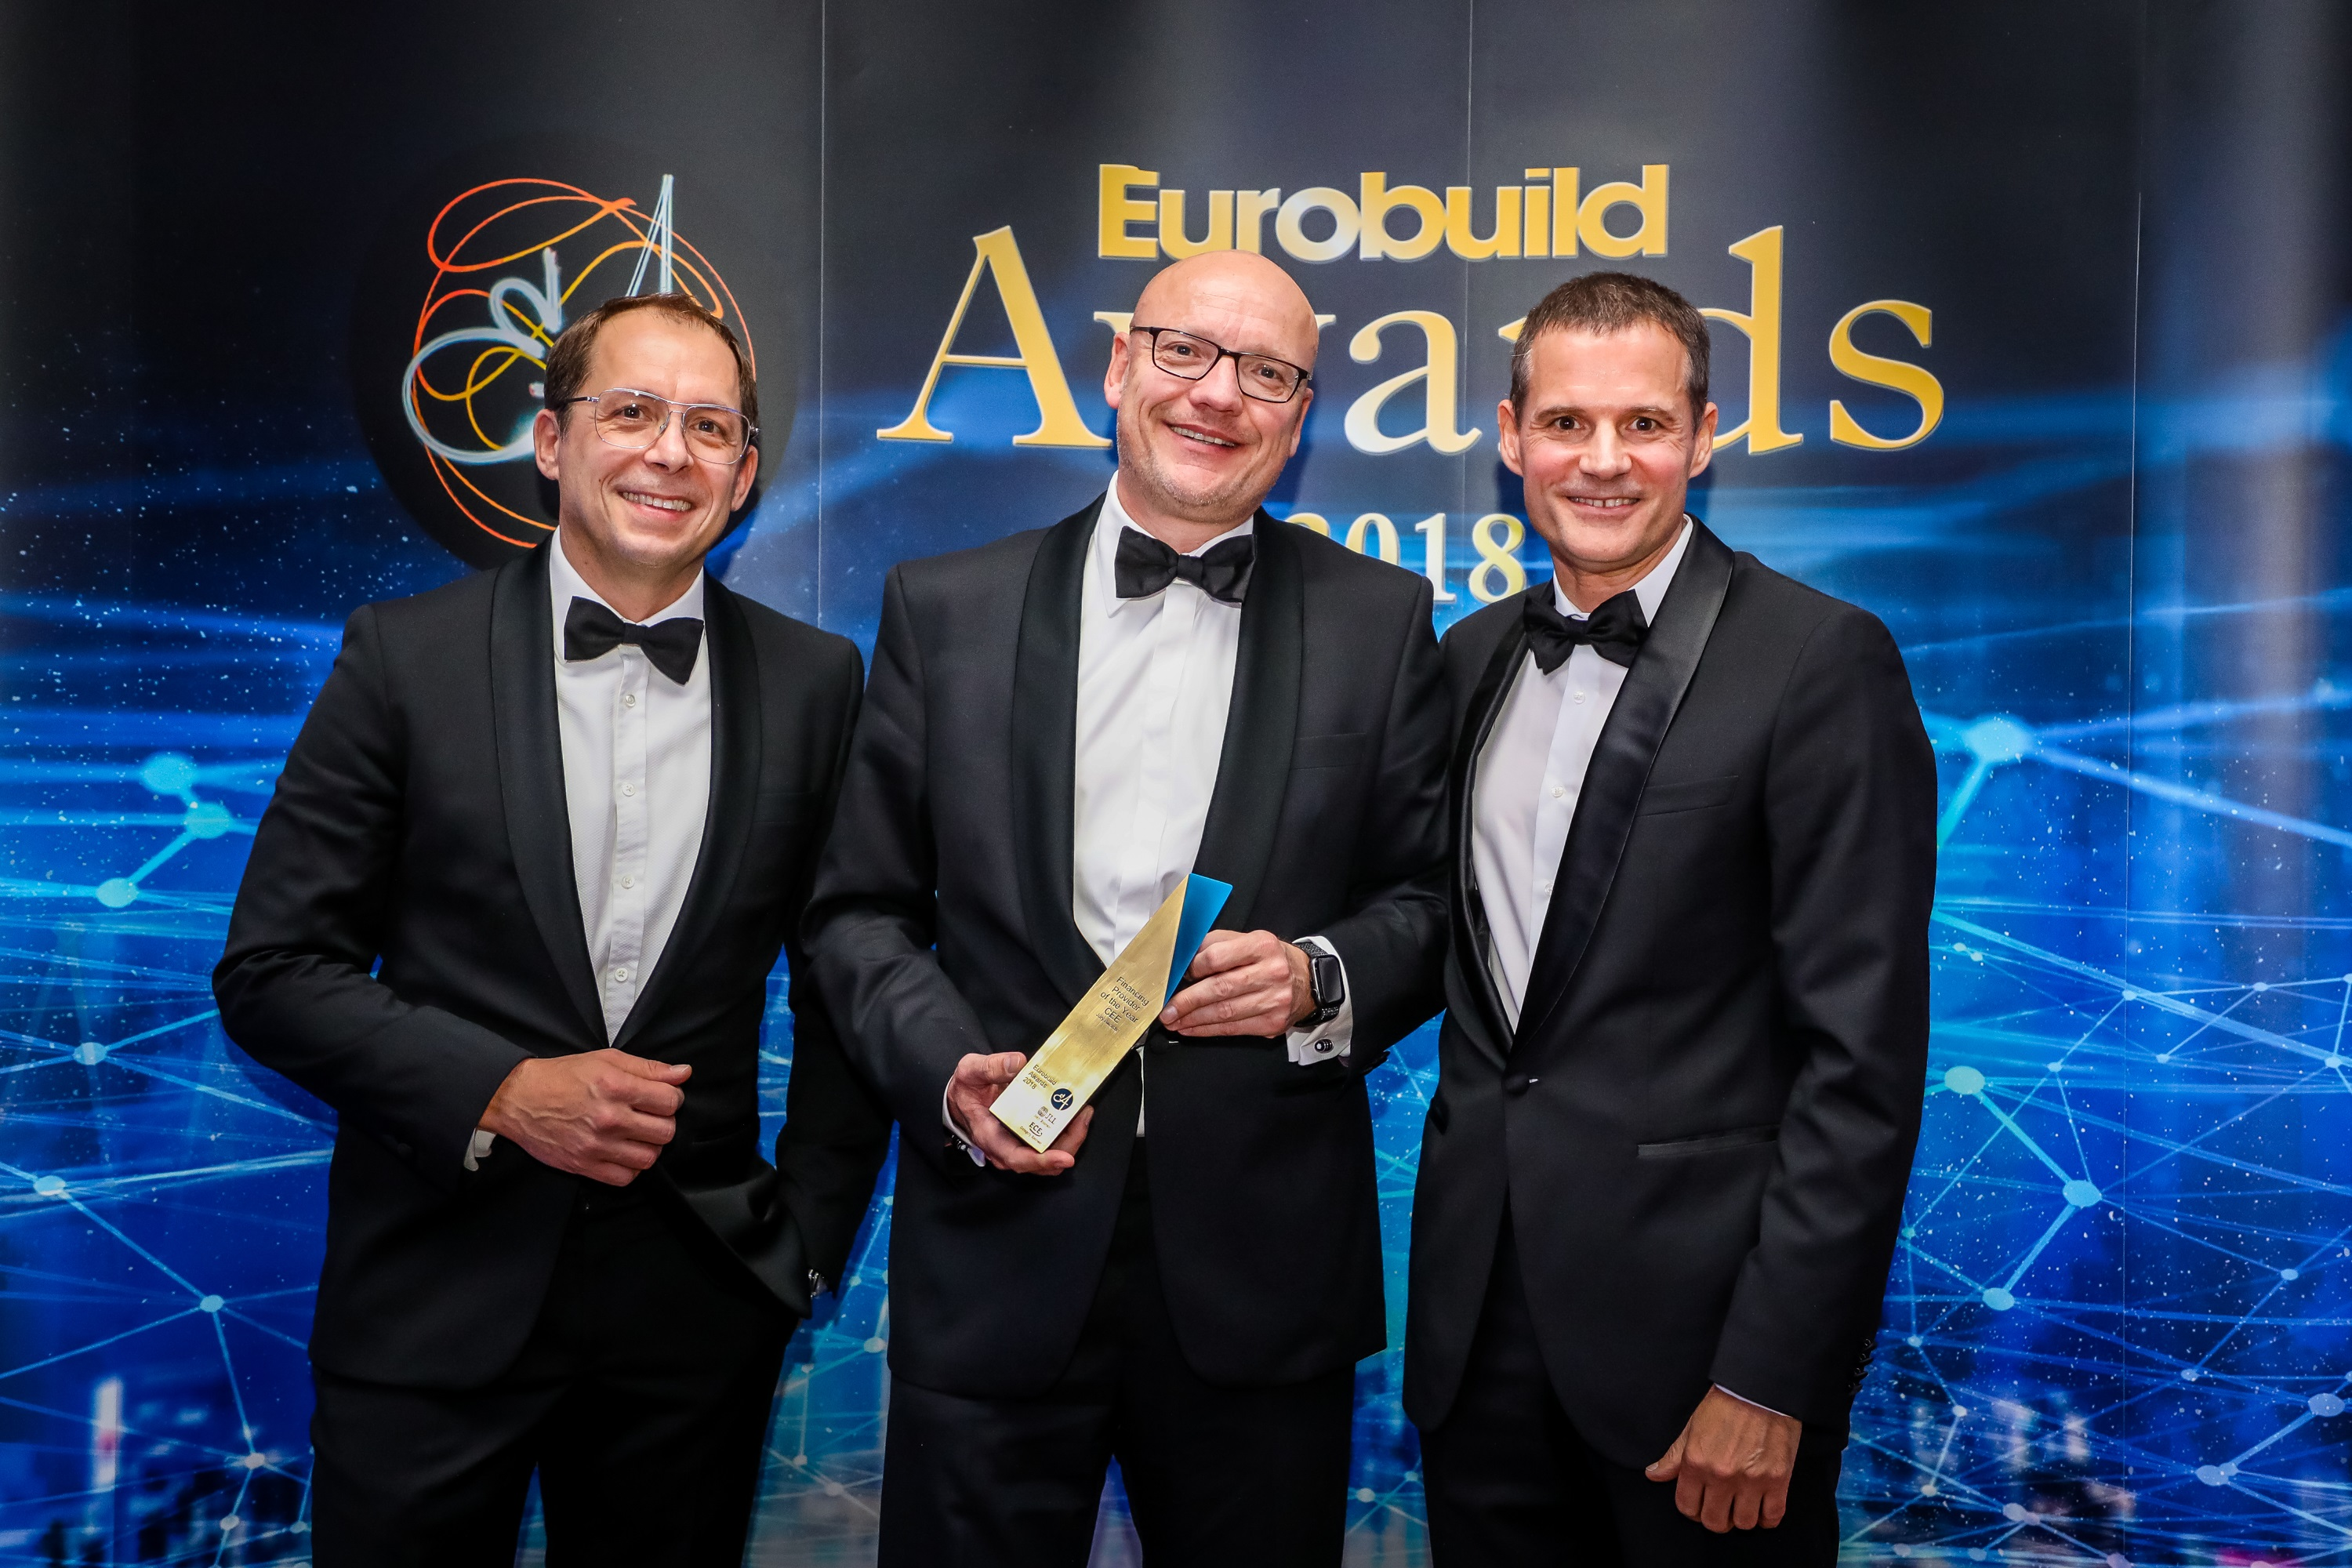 Eurobuild Award - Financing Provider of the Year for CEE